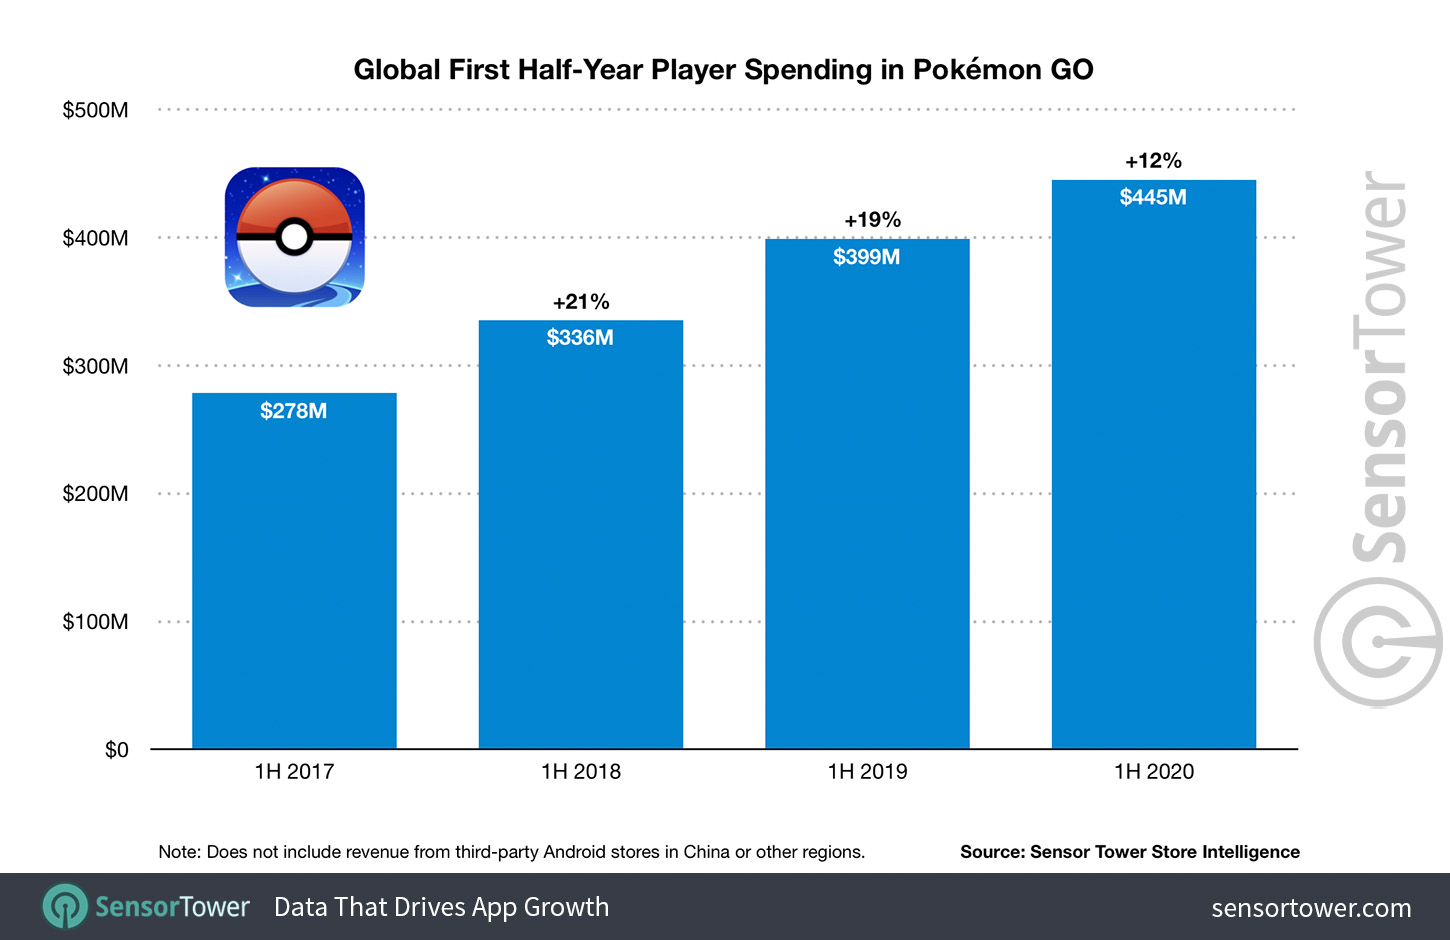 Pokémon Go revenue